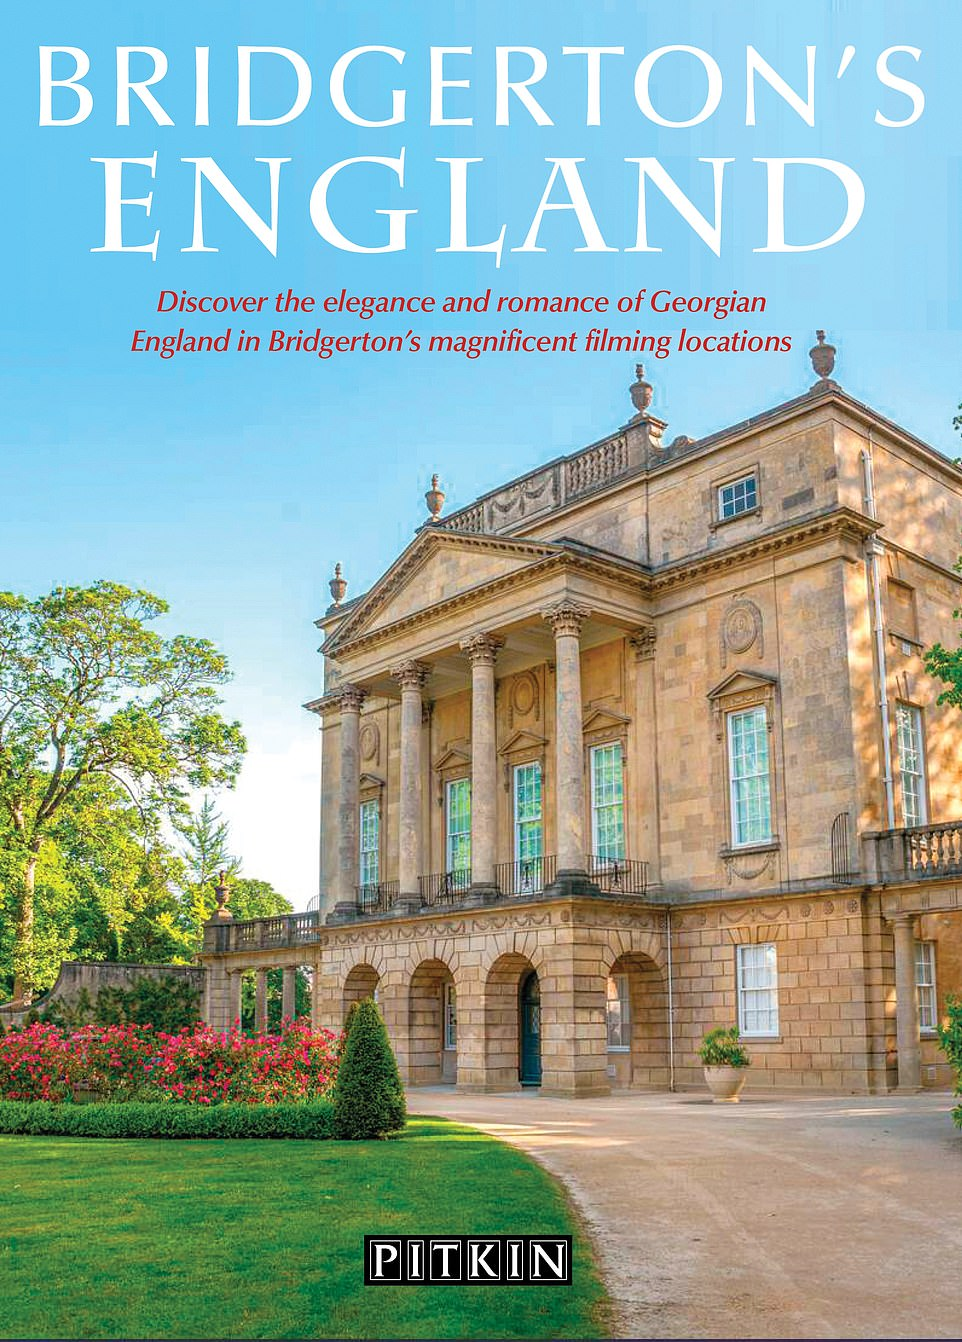 Bridgerton's England is published by Pitkin and costs £6.99